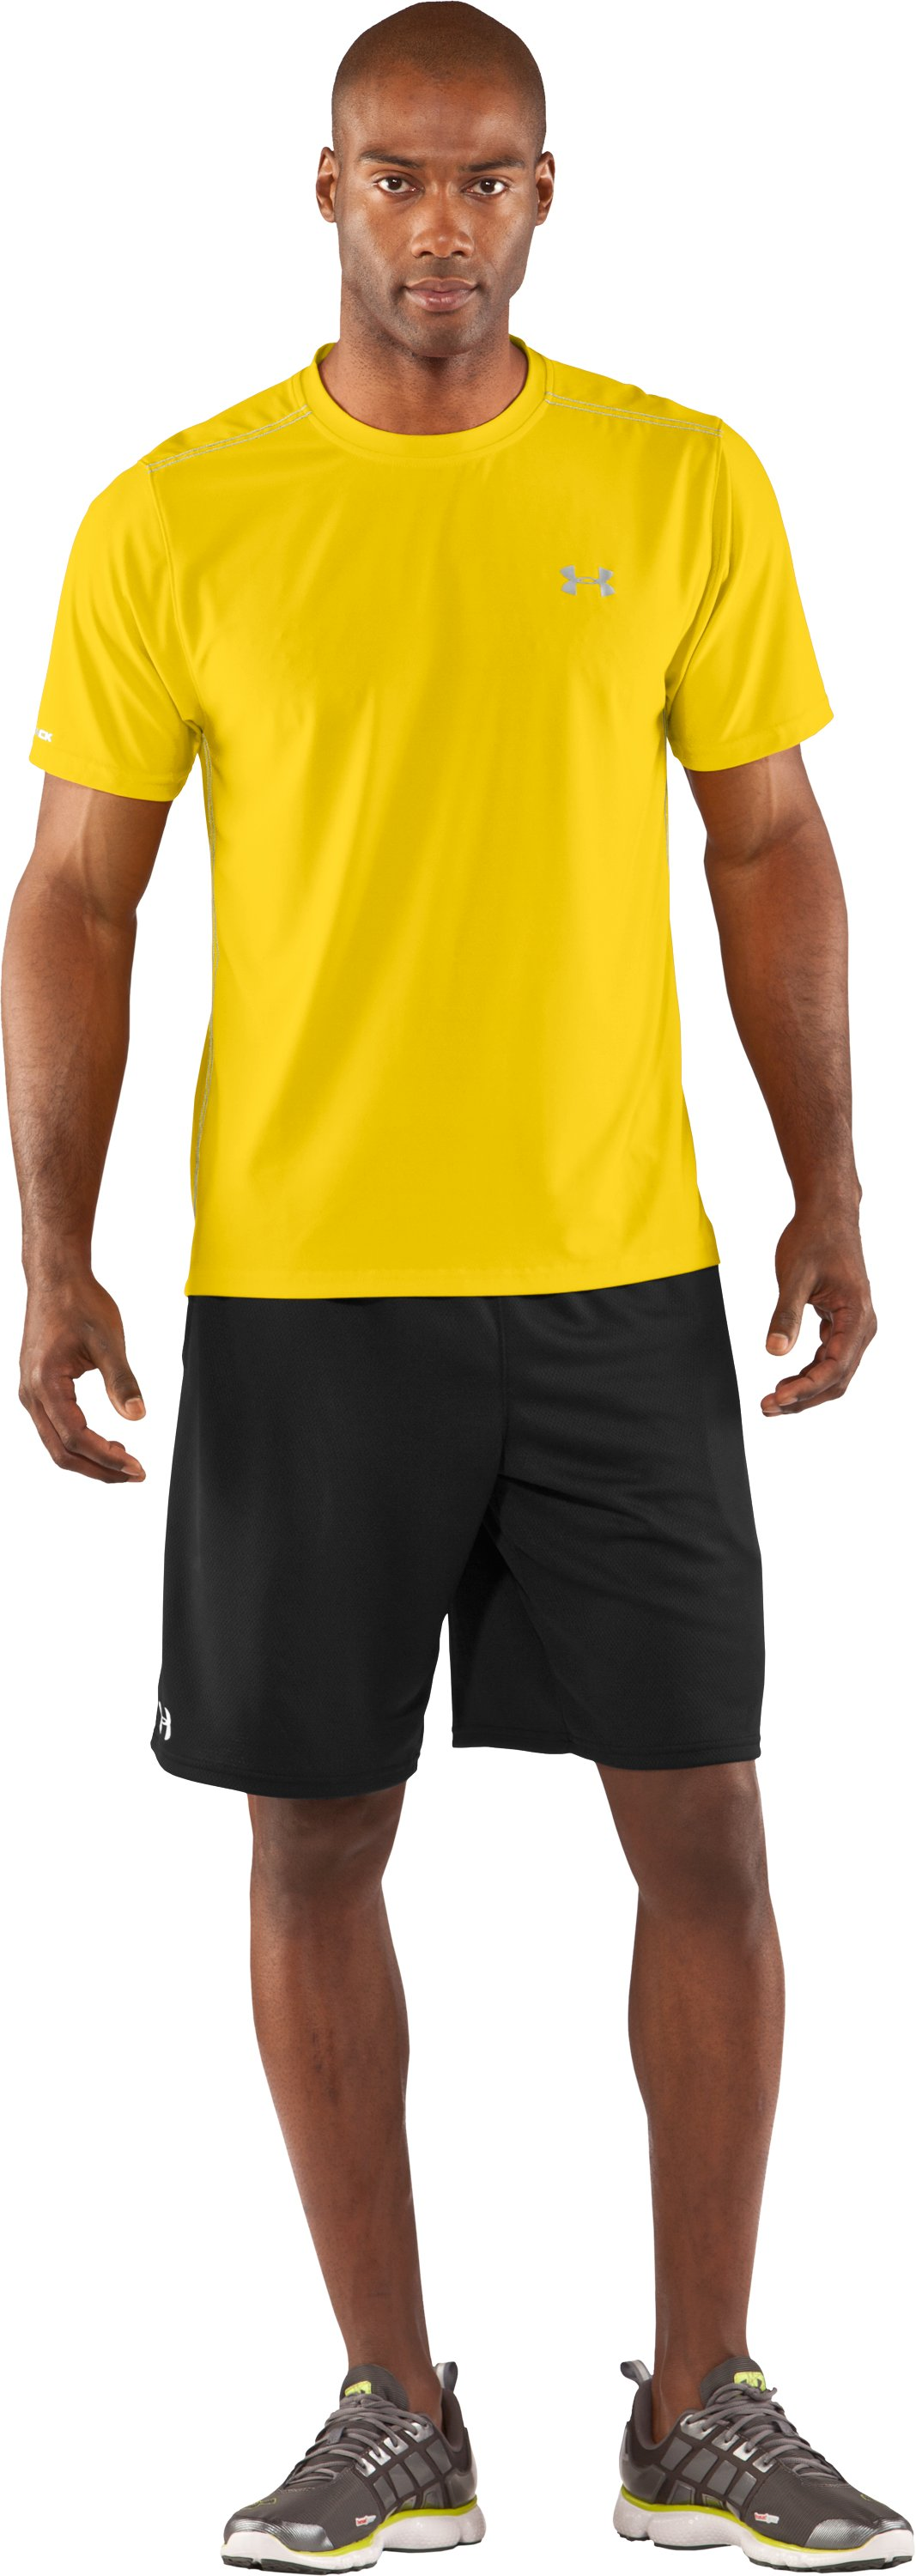 Men's coldblack® Short Sleeve T-Shirt, Taxi, zoomed image